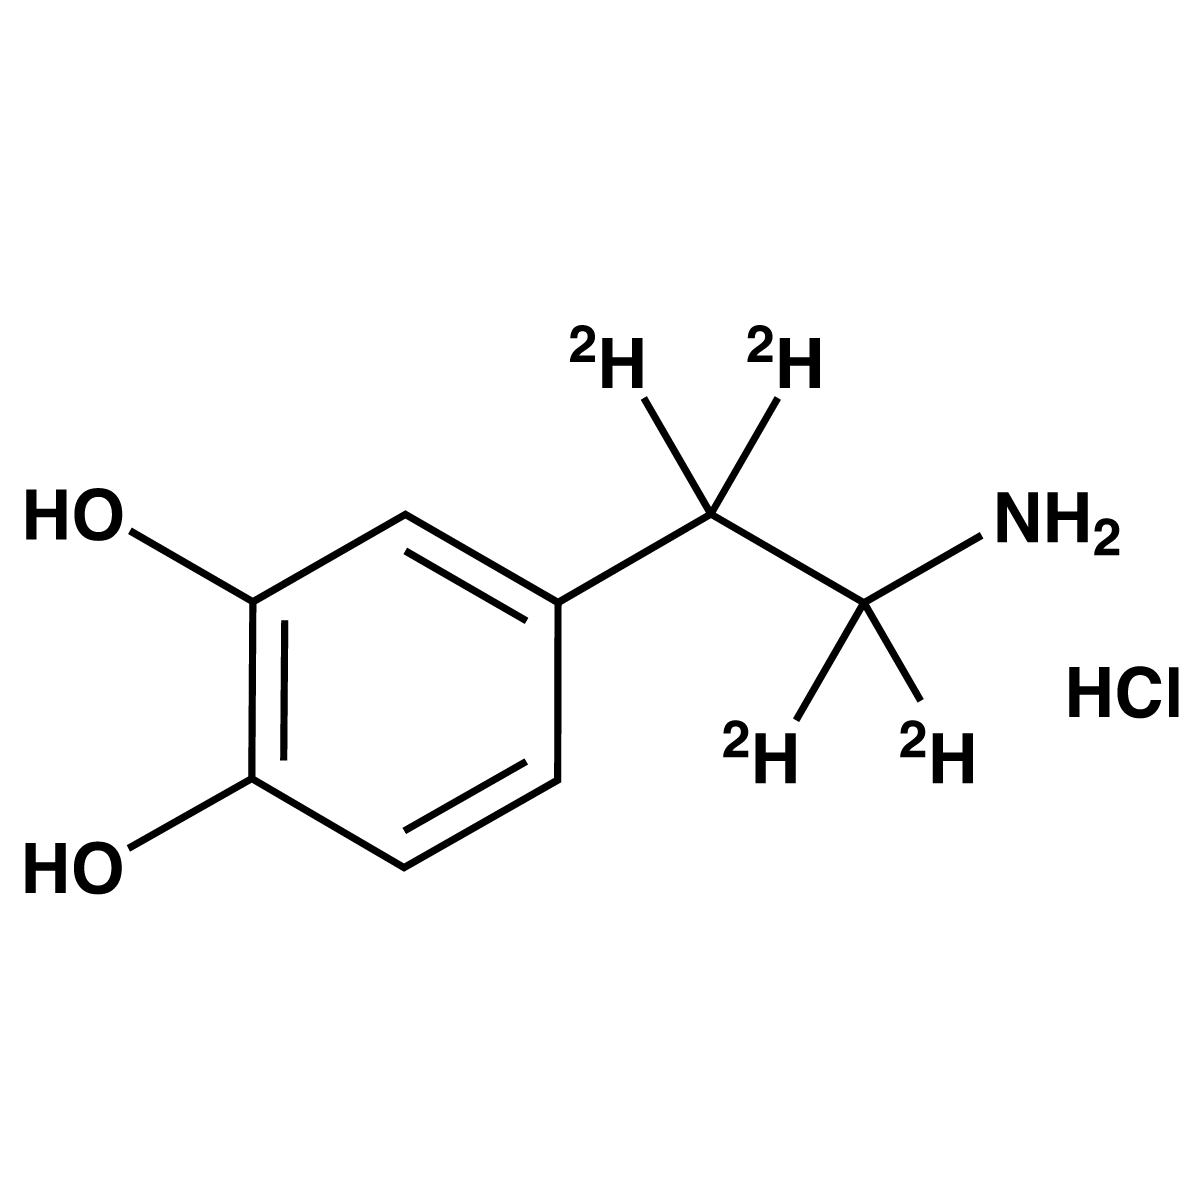 Dopamine-[d4] Hydrochloride (Solution)